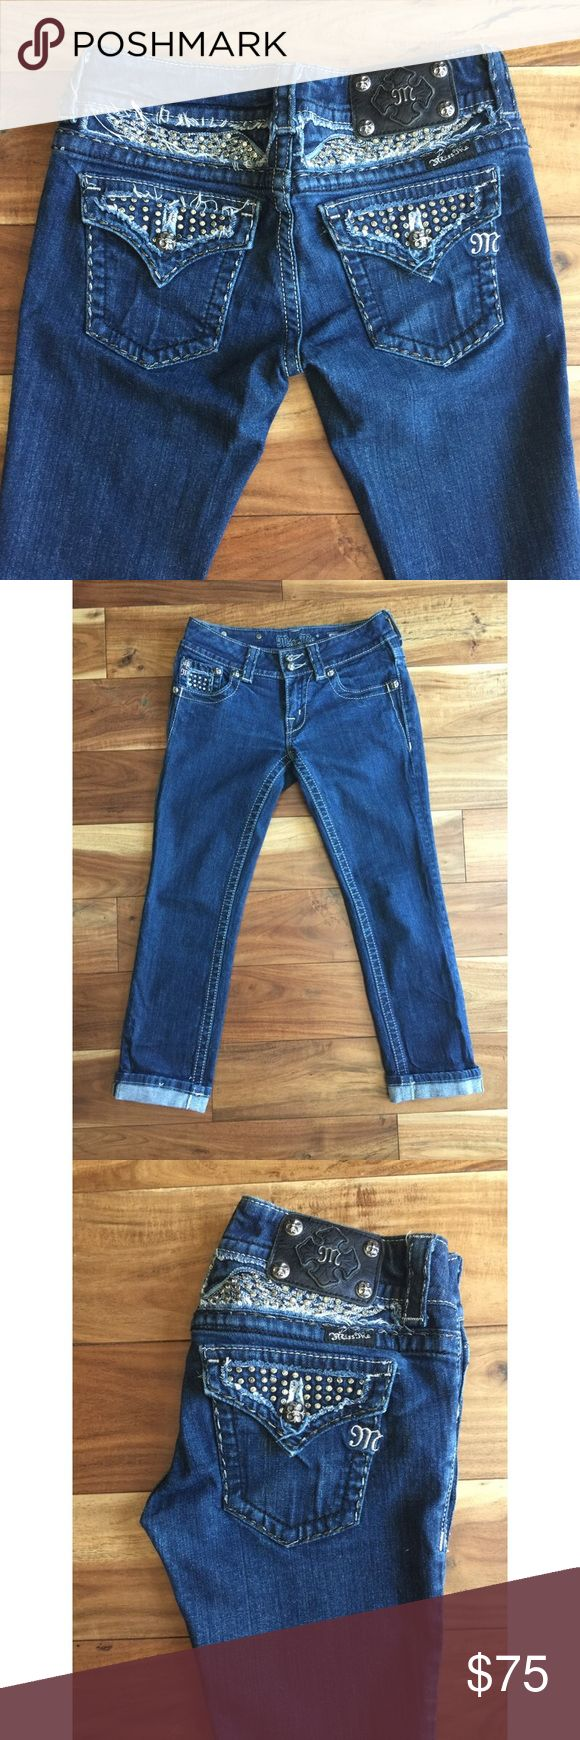 Miss Me Capri/ Crops New. No damage. No missing rivets or buttons. Miss Me brand capris crops. Angel wing pocket detail. Double button front. Low rise. Buckle exclusive design. Miss Me Jeans Ankle & Cropped